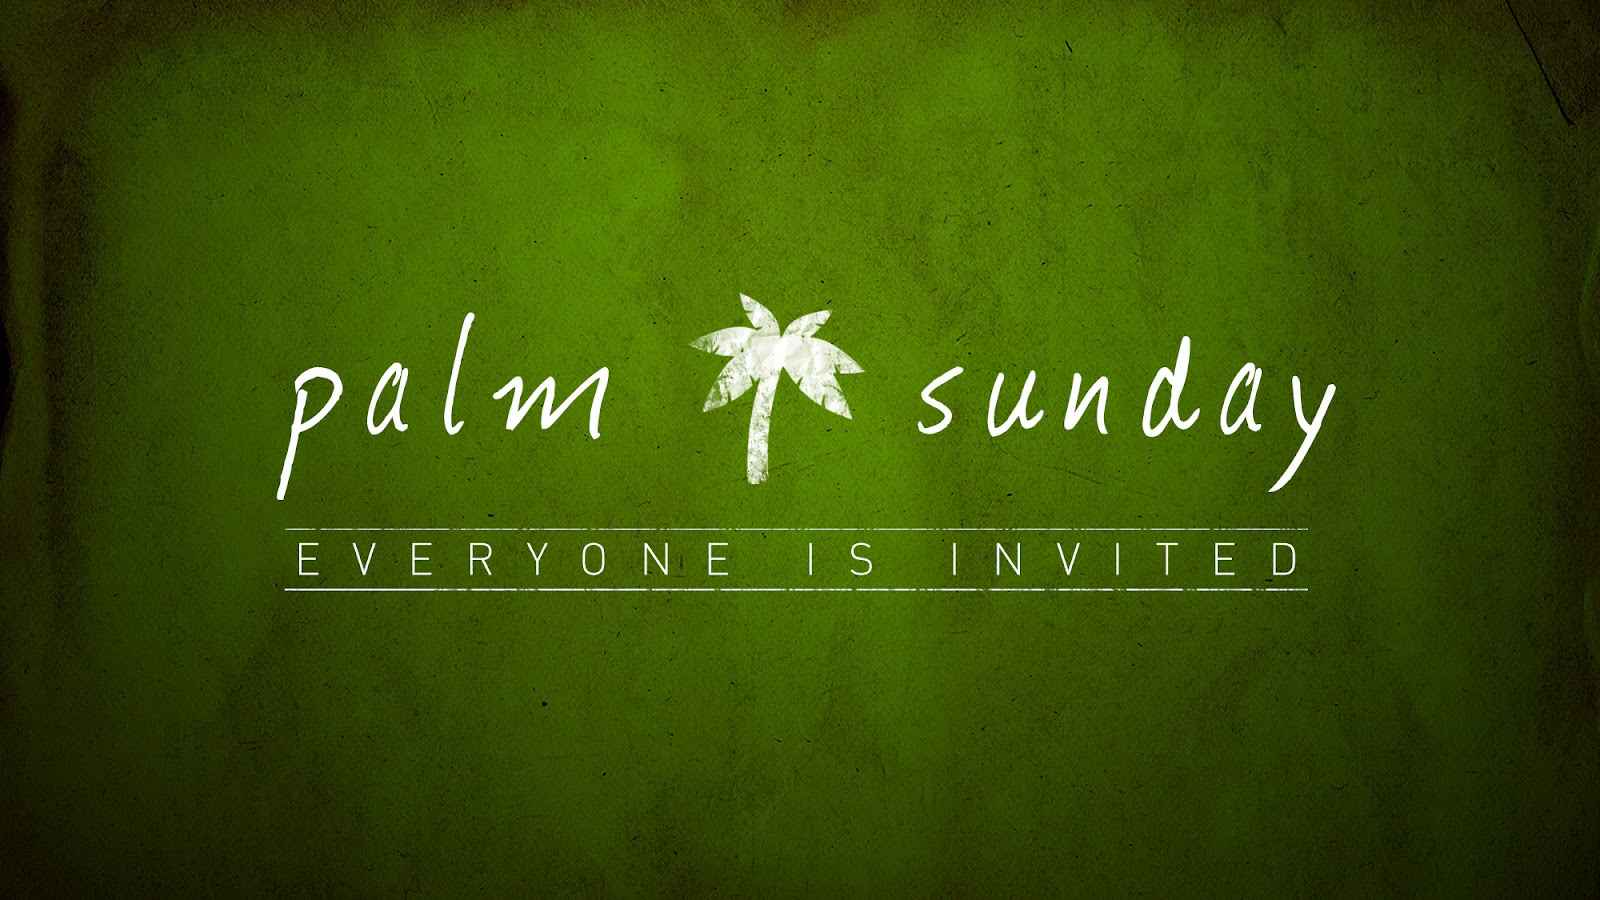 PicturesPool: Palm Sunday Greetings Wallpapers